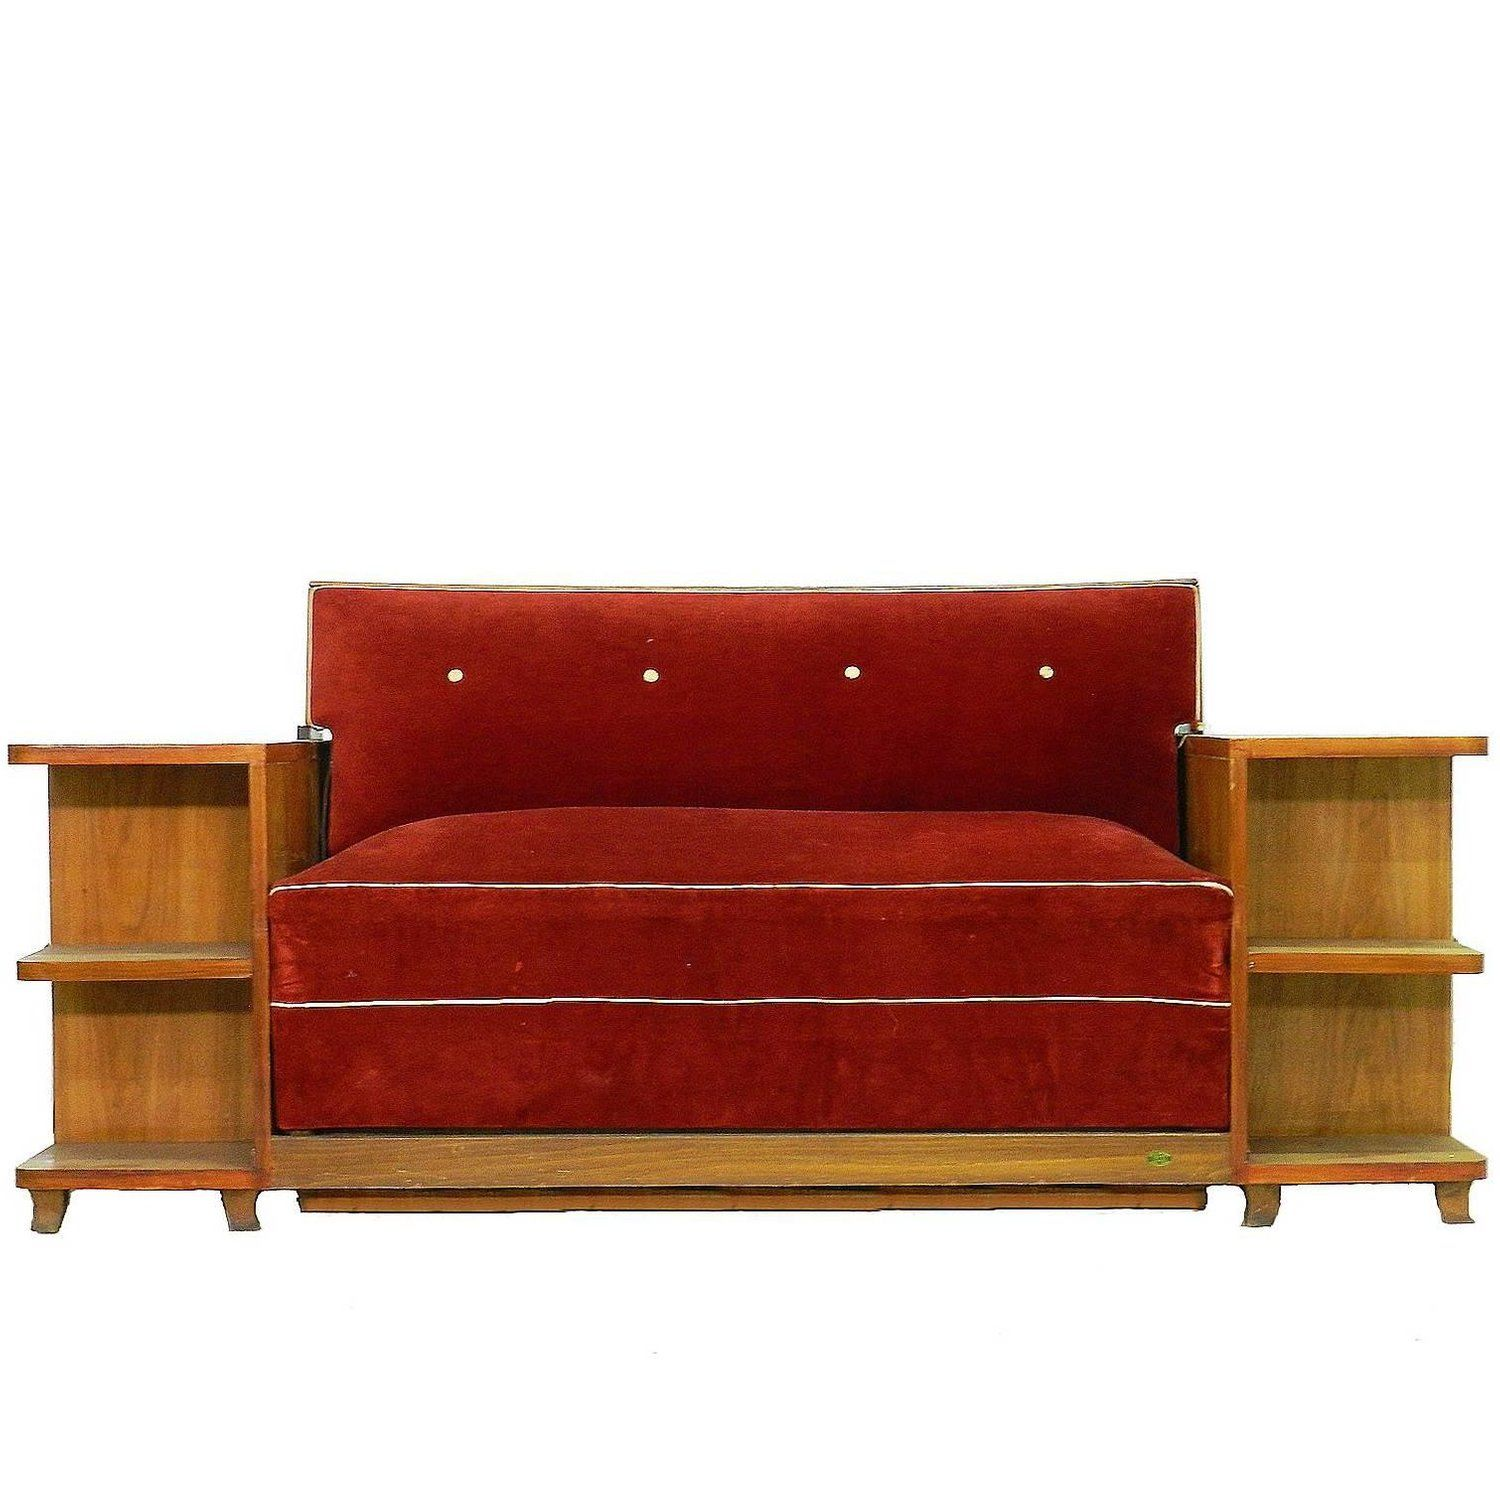 Art Deco Sofa French Canape Bed With Integrated Cabinets And Shelves